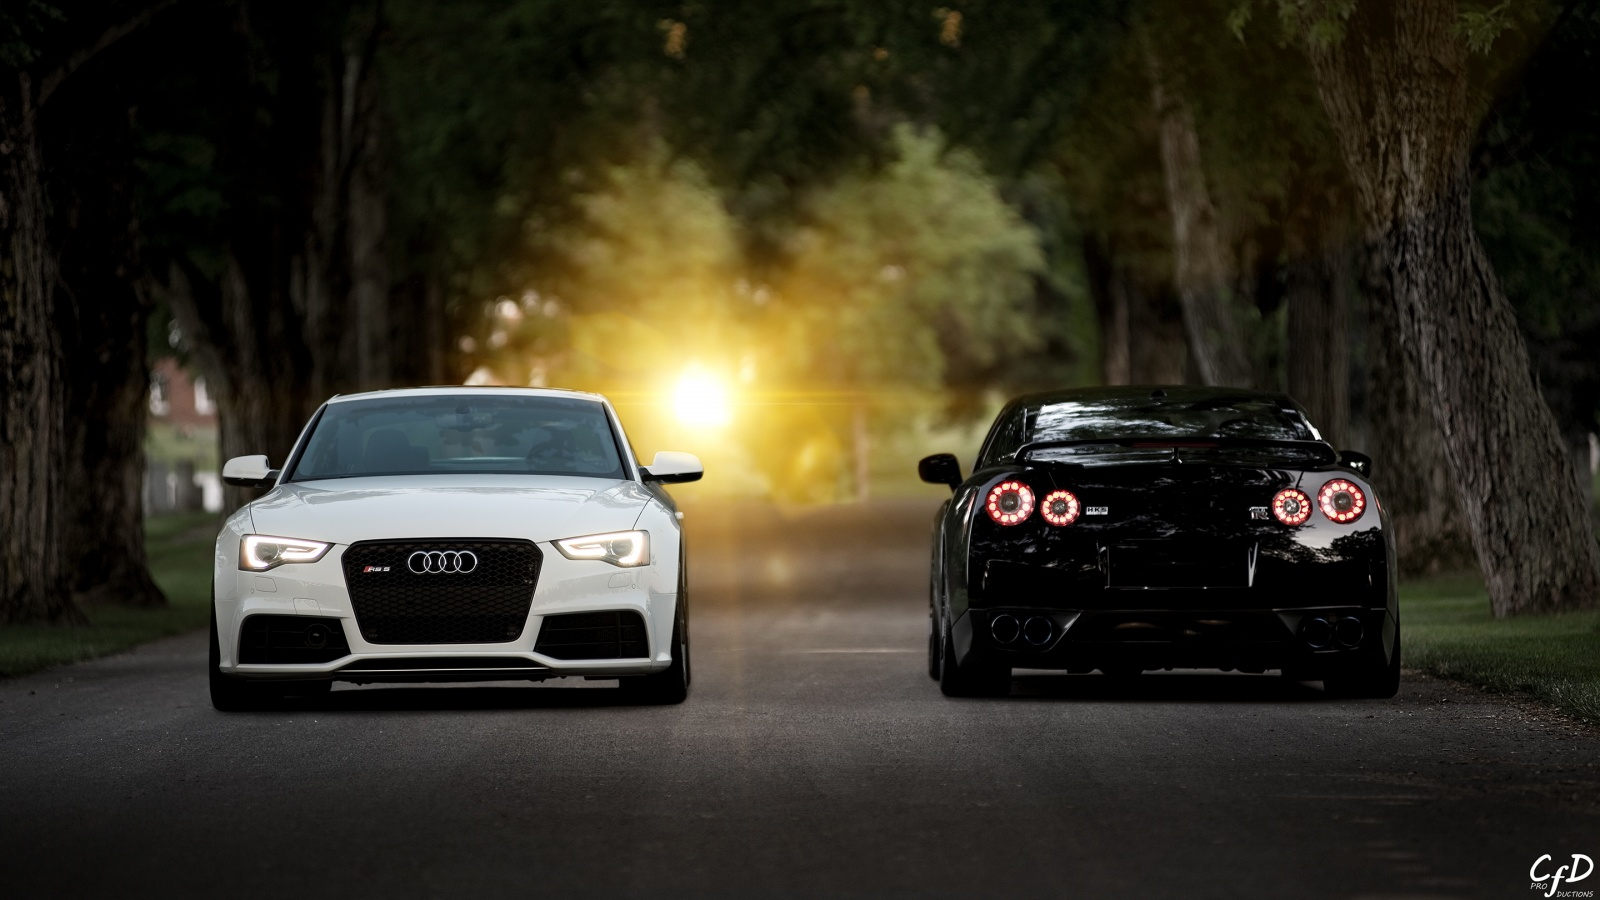 Audi rs5 nissan gtr 35 Wallpaper in 1600x900 HD Resolutions